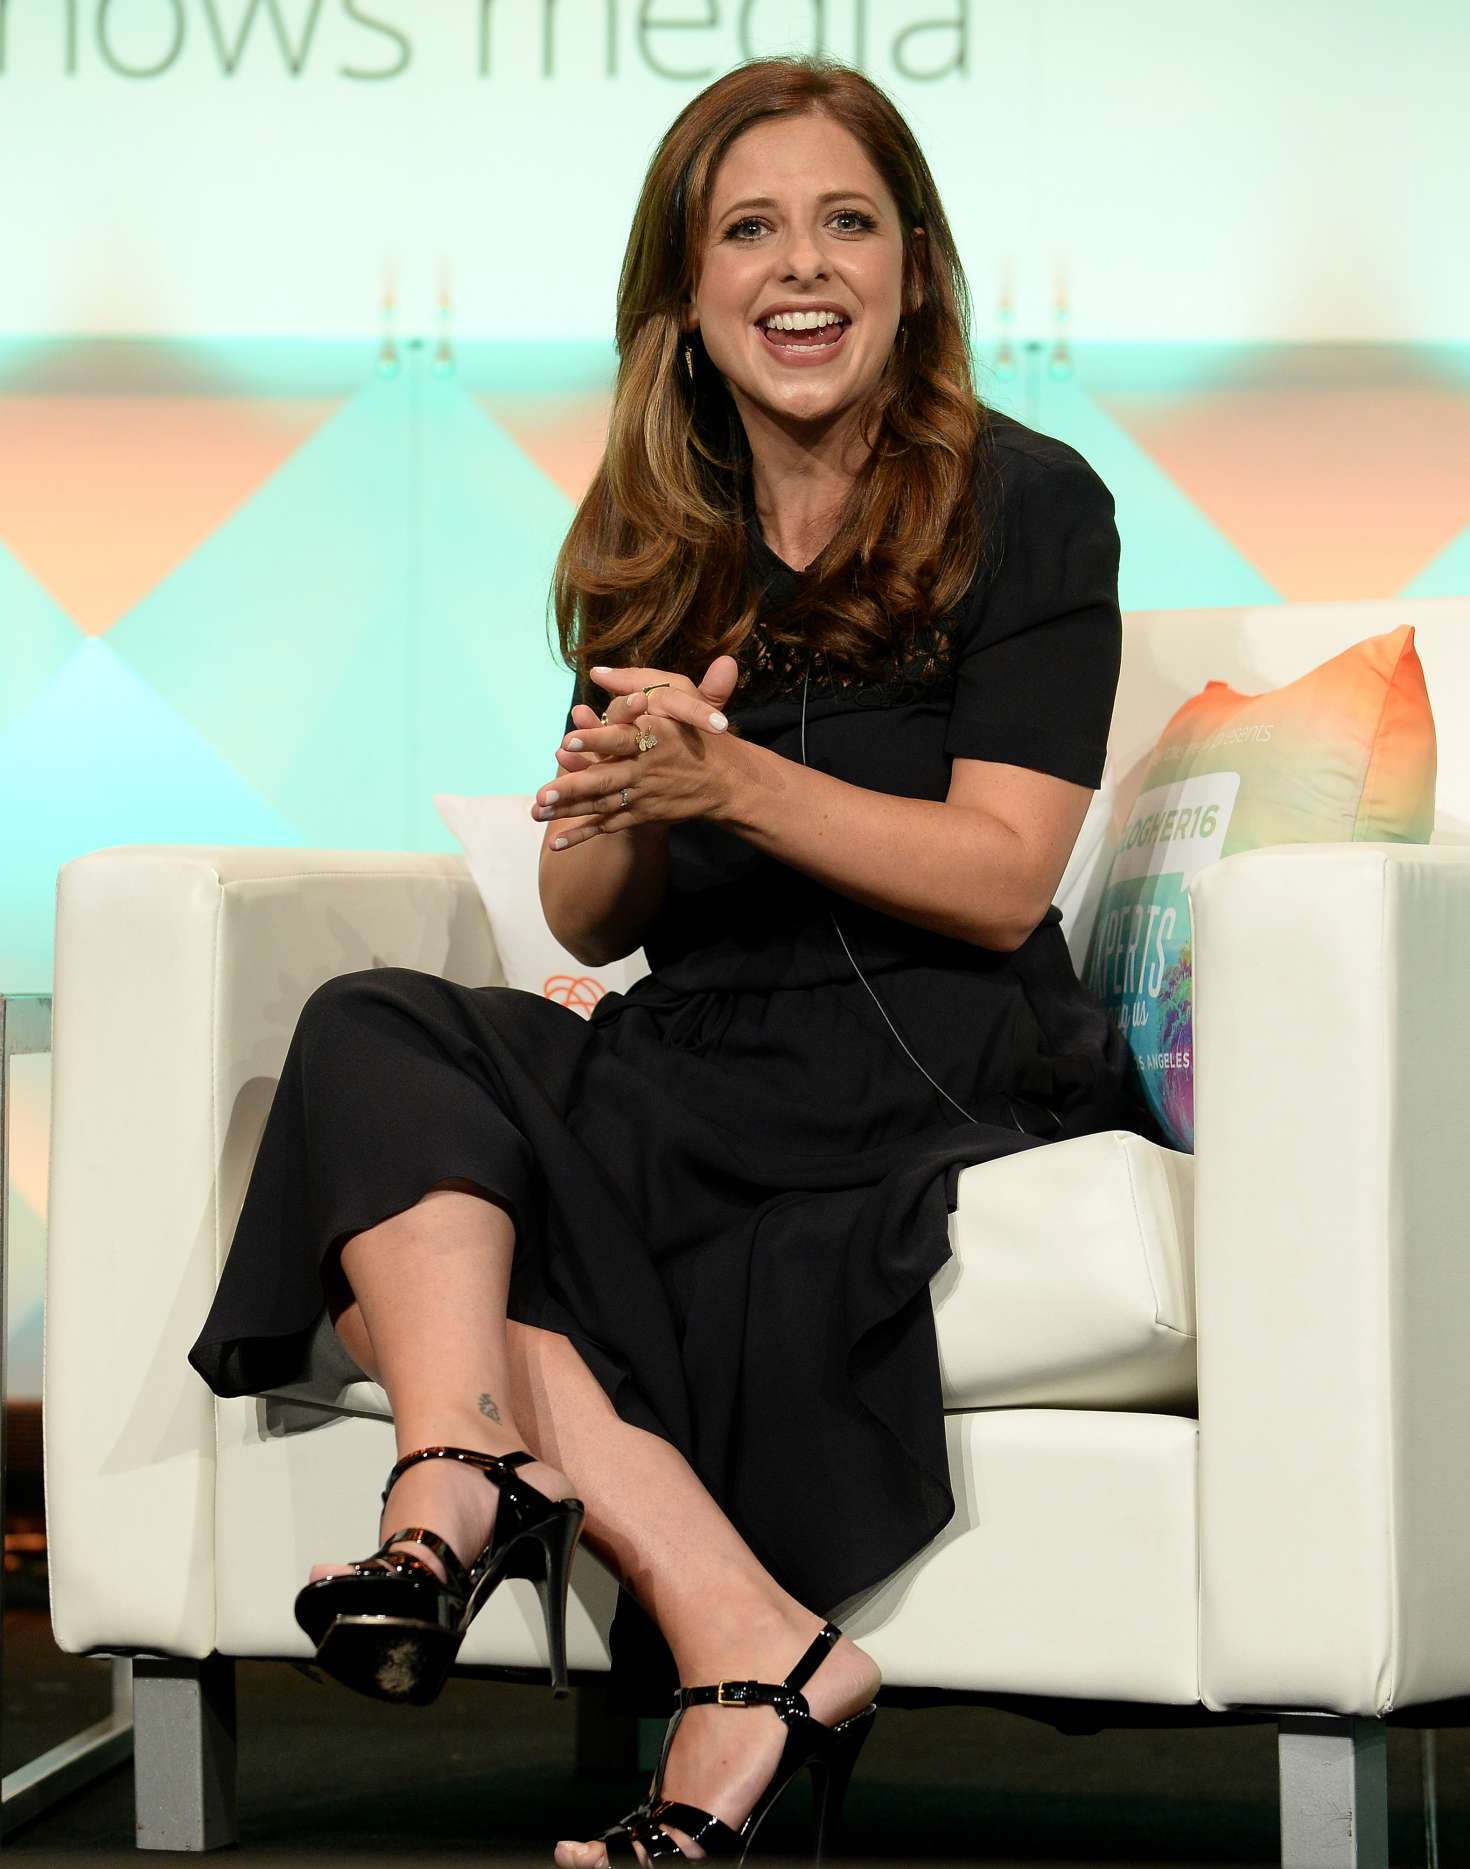 Sarah Michelle Gellar - #BlogHer16 Experts Among US Conference in Los Angeles